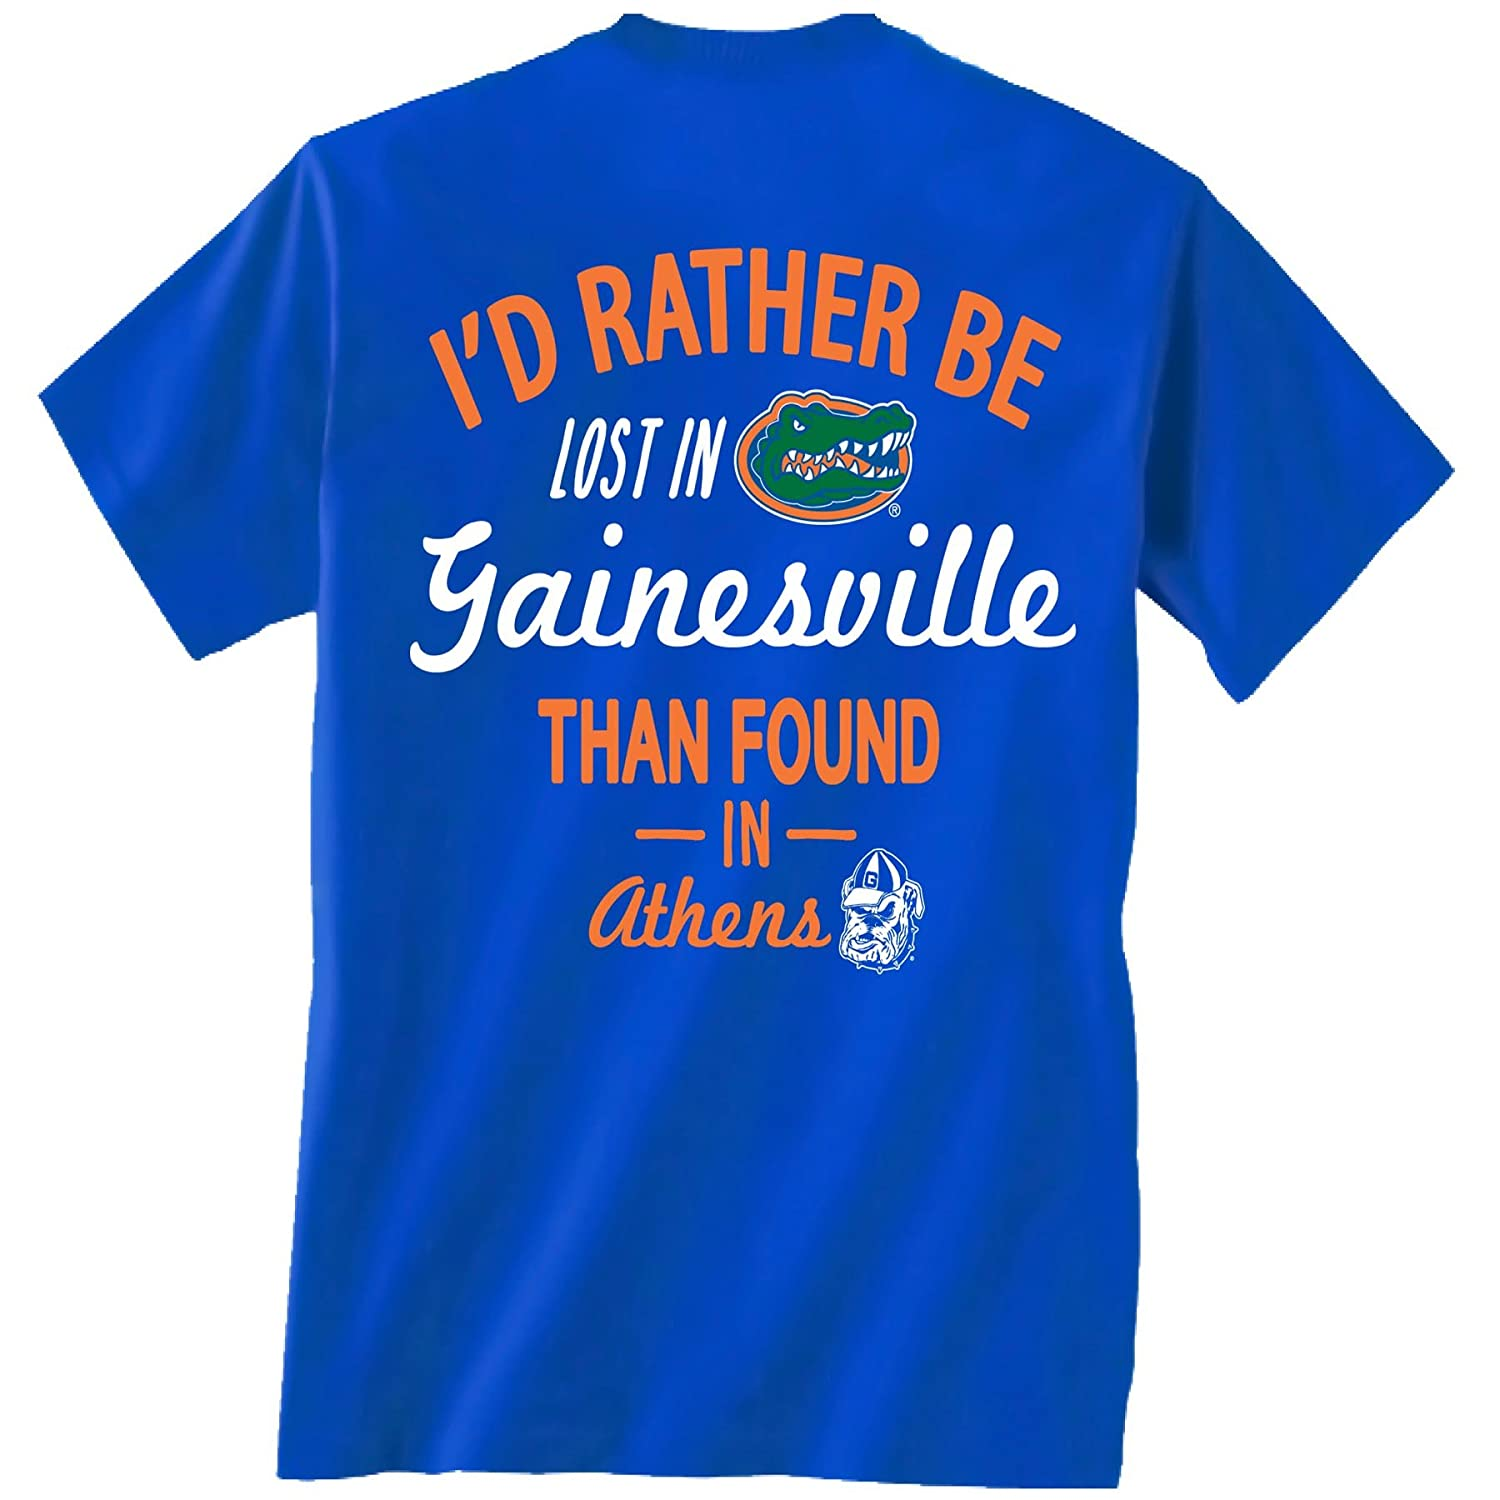 超激安 Florida Gators in Lost in Florida Gainesville Gators Tshirt Small B00PM754RU, ベルセーブ:9fc39e65 --- a0267596.xsph.ru